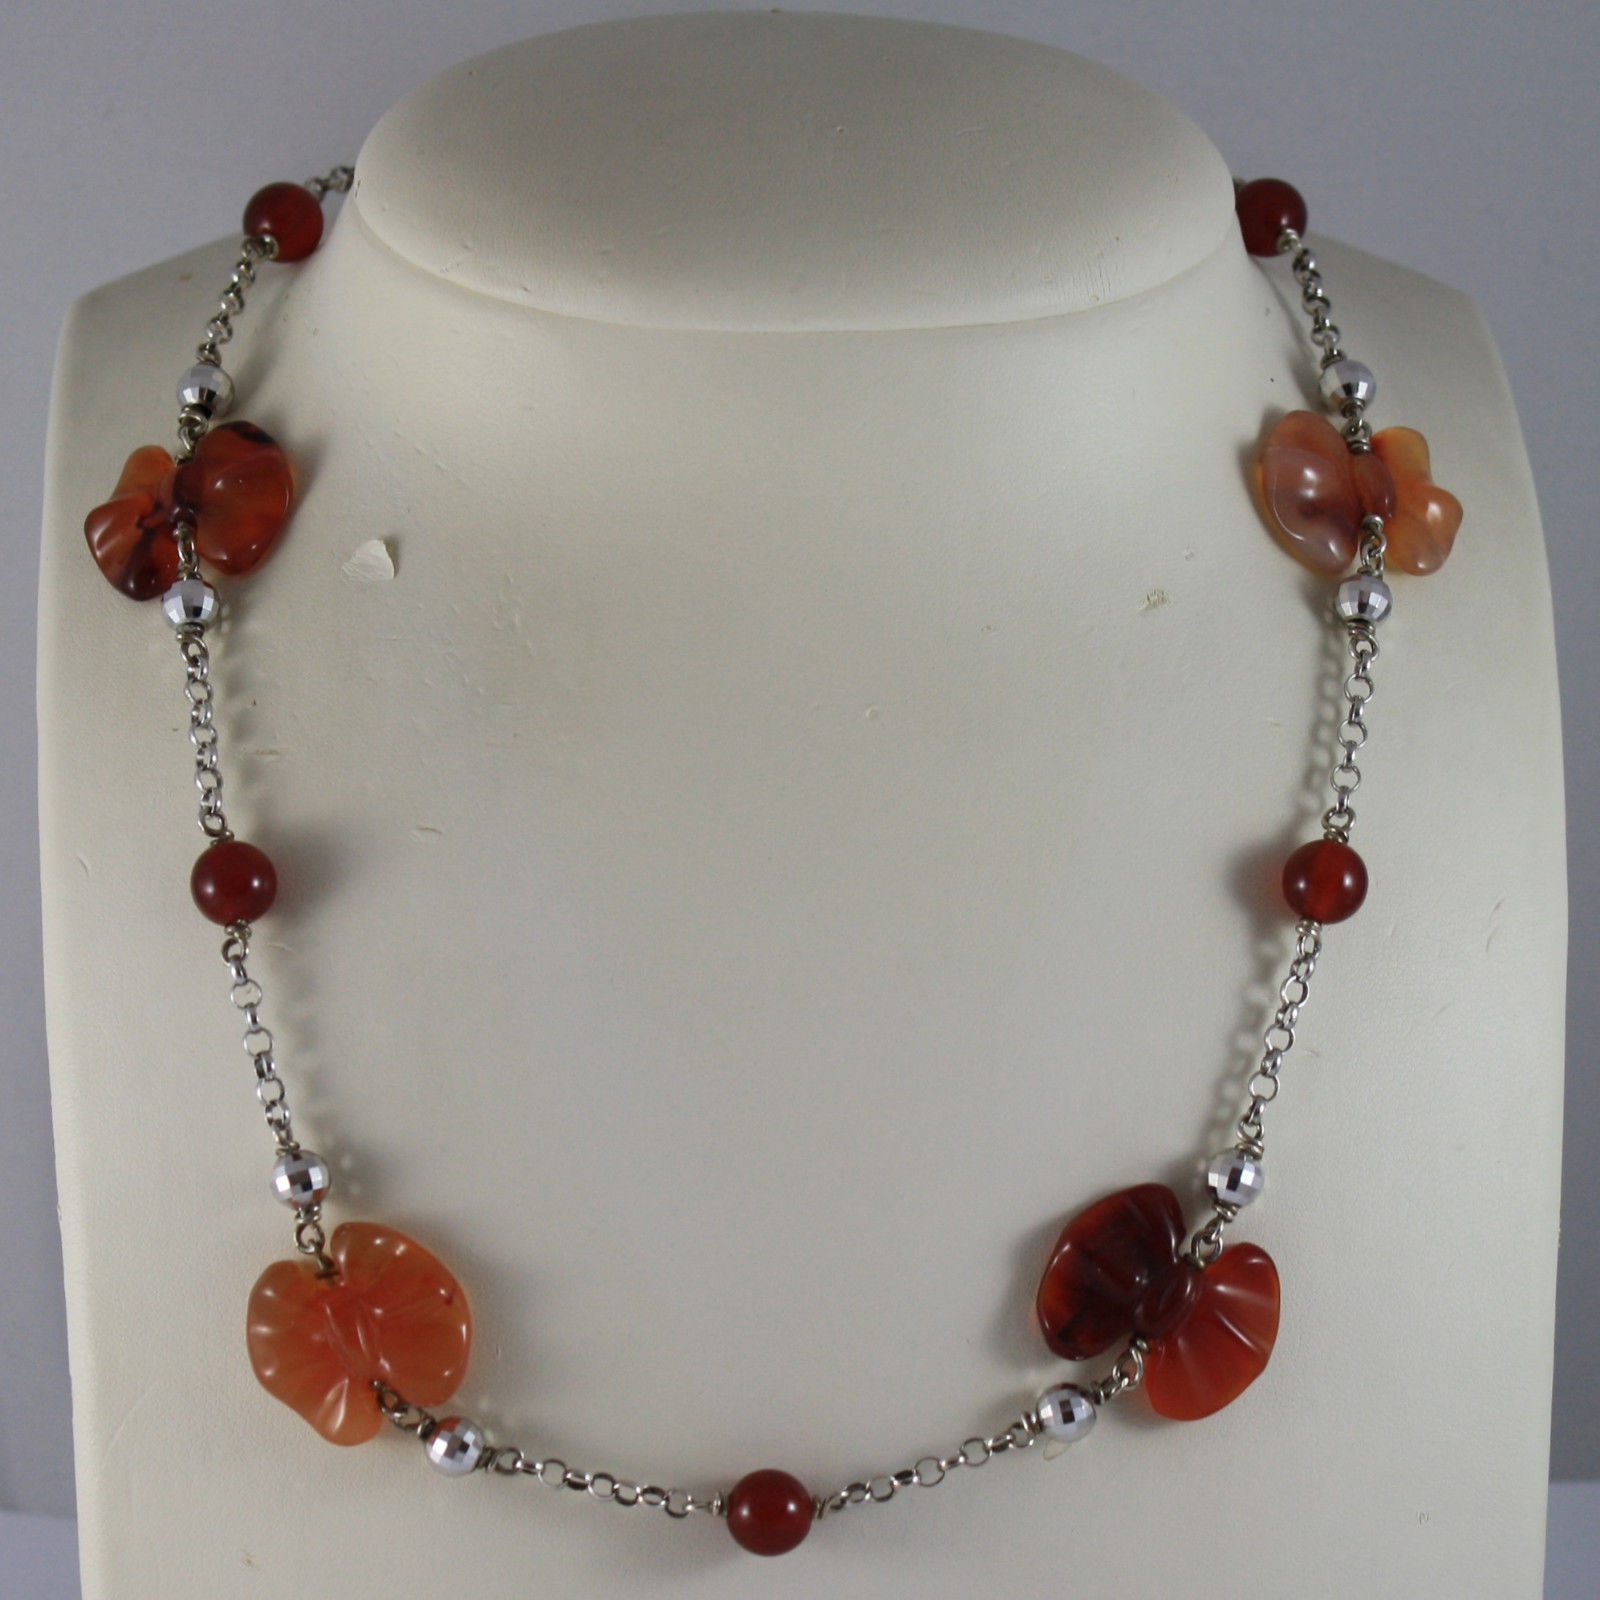 .925 RHODIUM SILVER NECKLACE WITH RED CARNELIAN AND AGATE